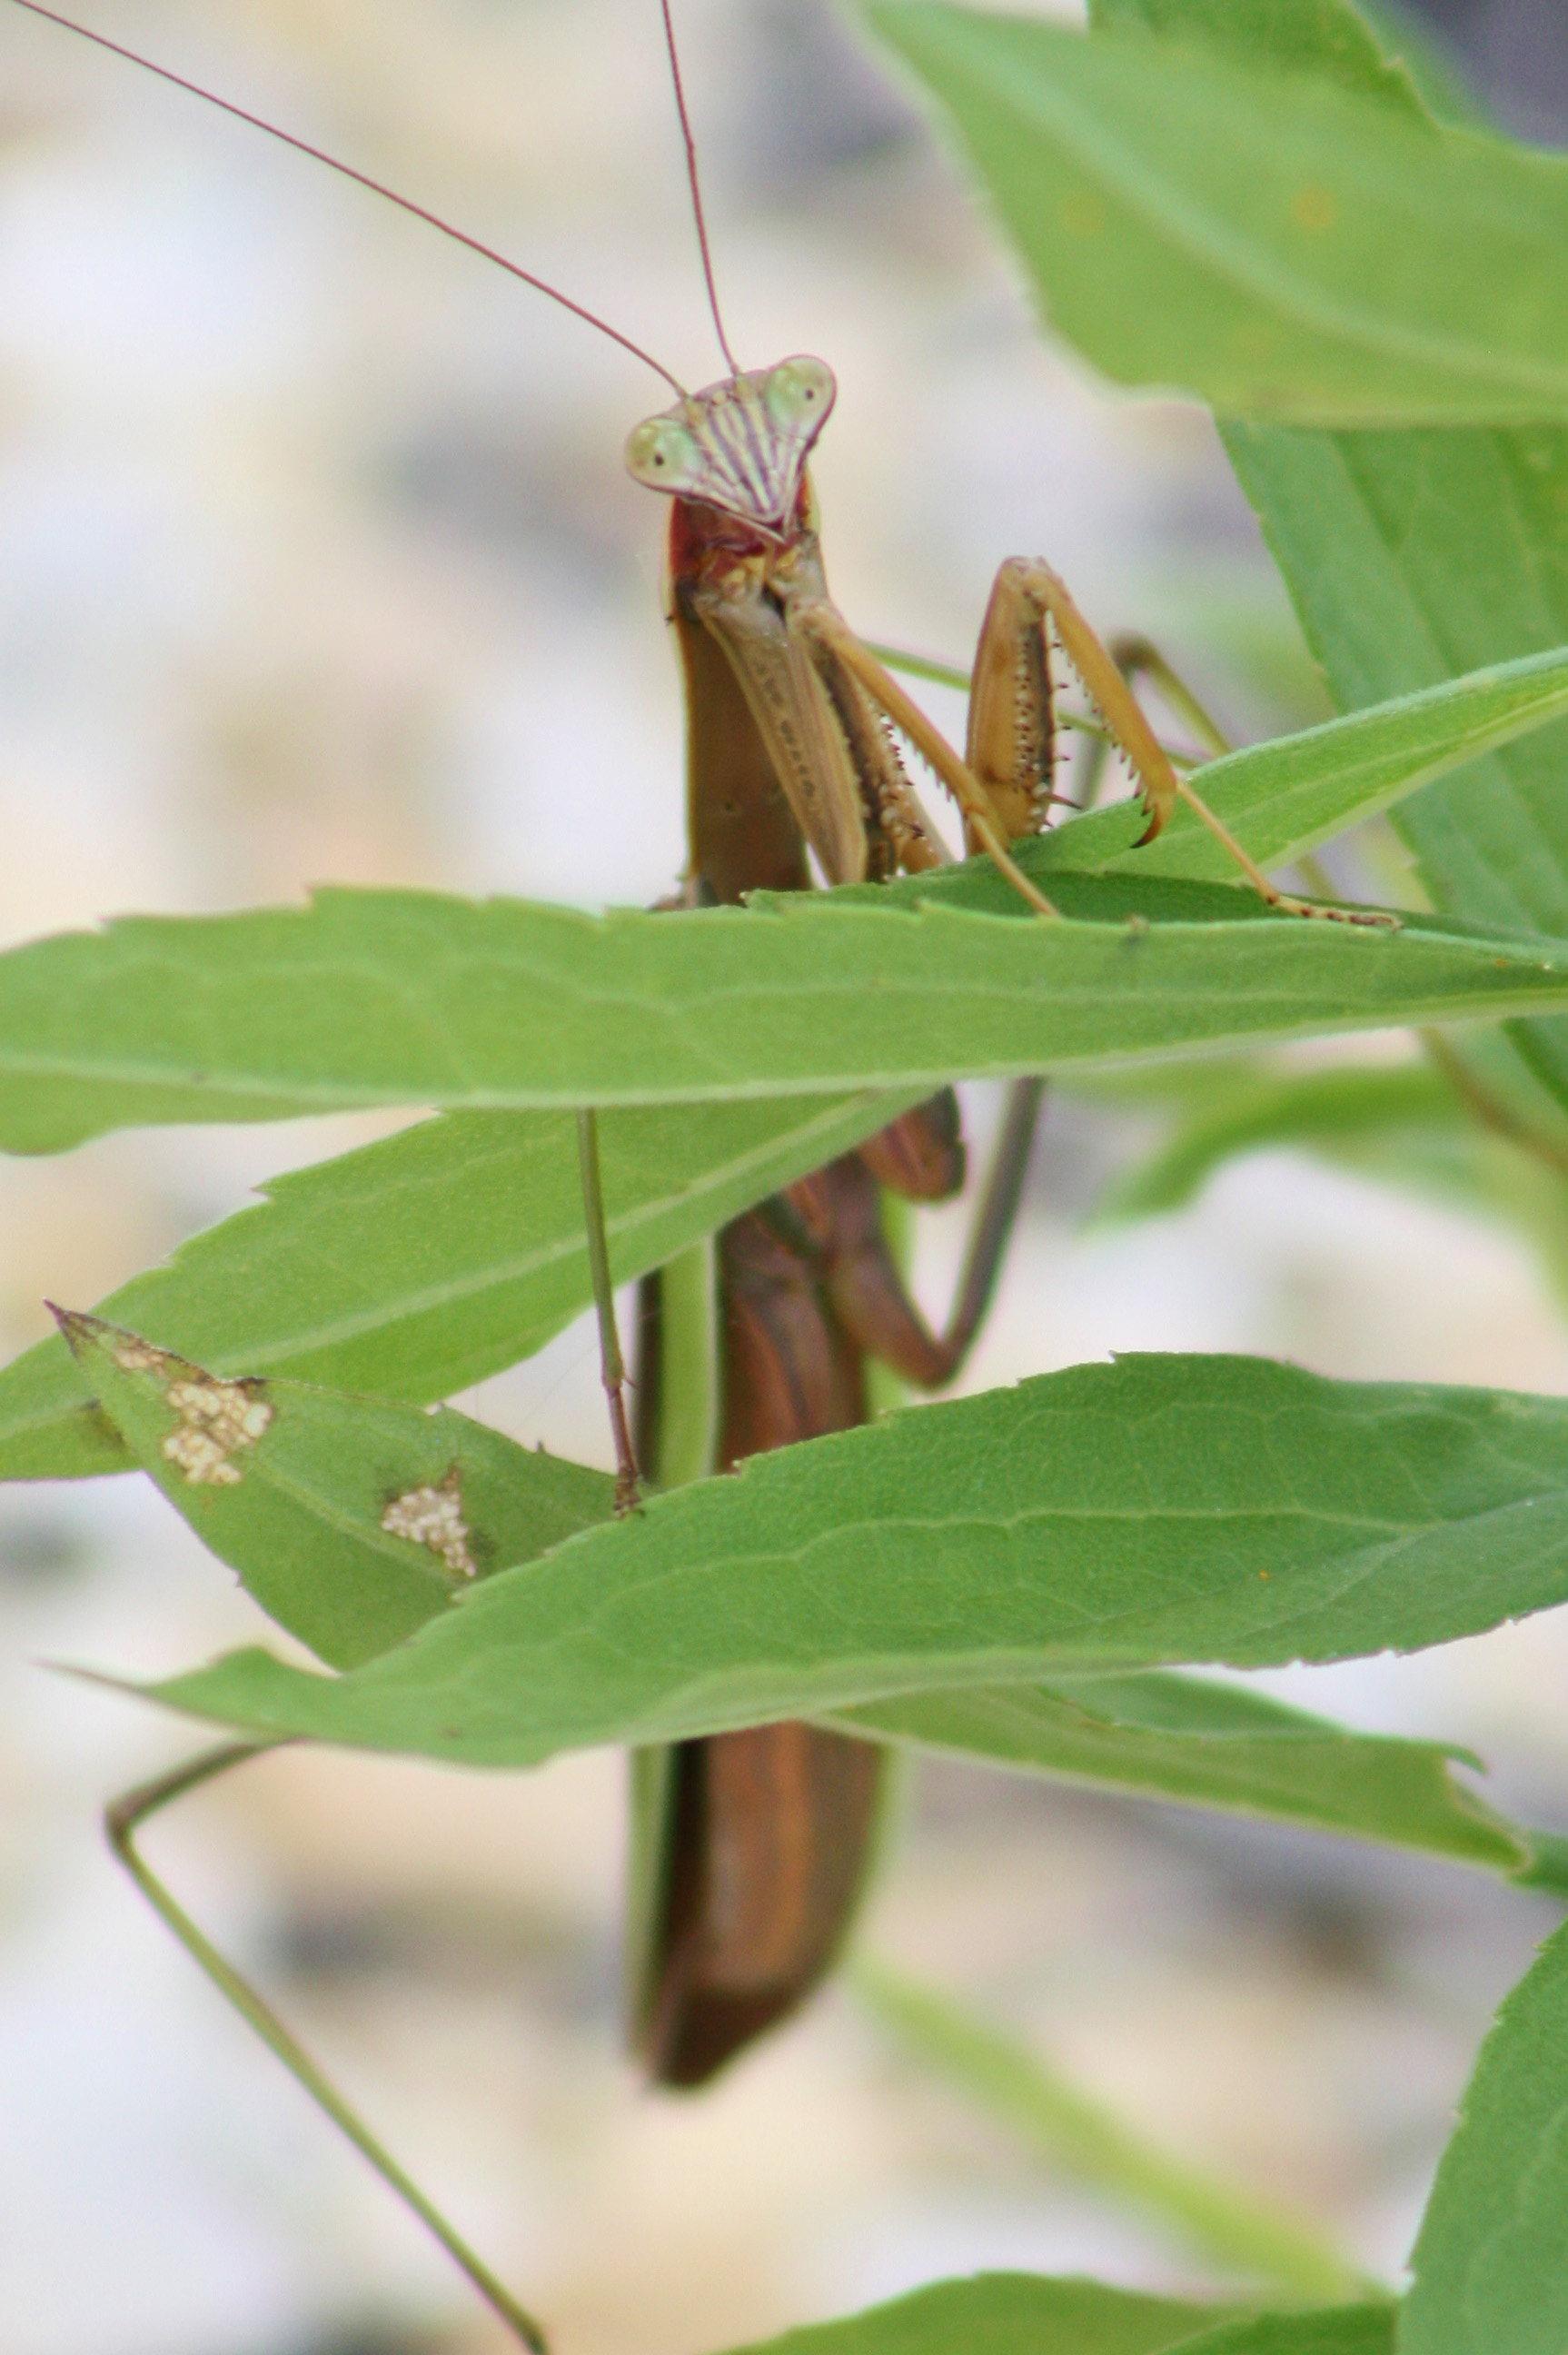 A praying mantis behind the Industrial Building Complex trailers appears caught off guard. Photo: Bridget Scerini, TD